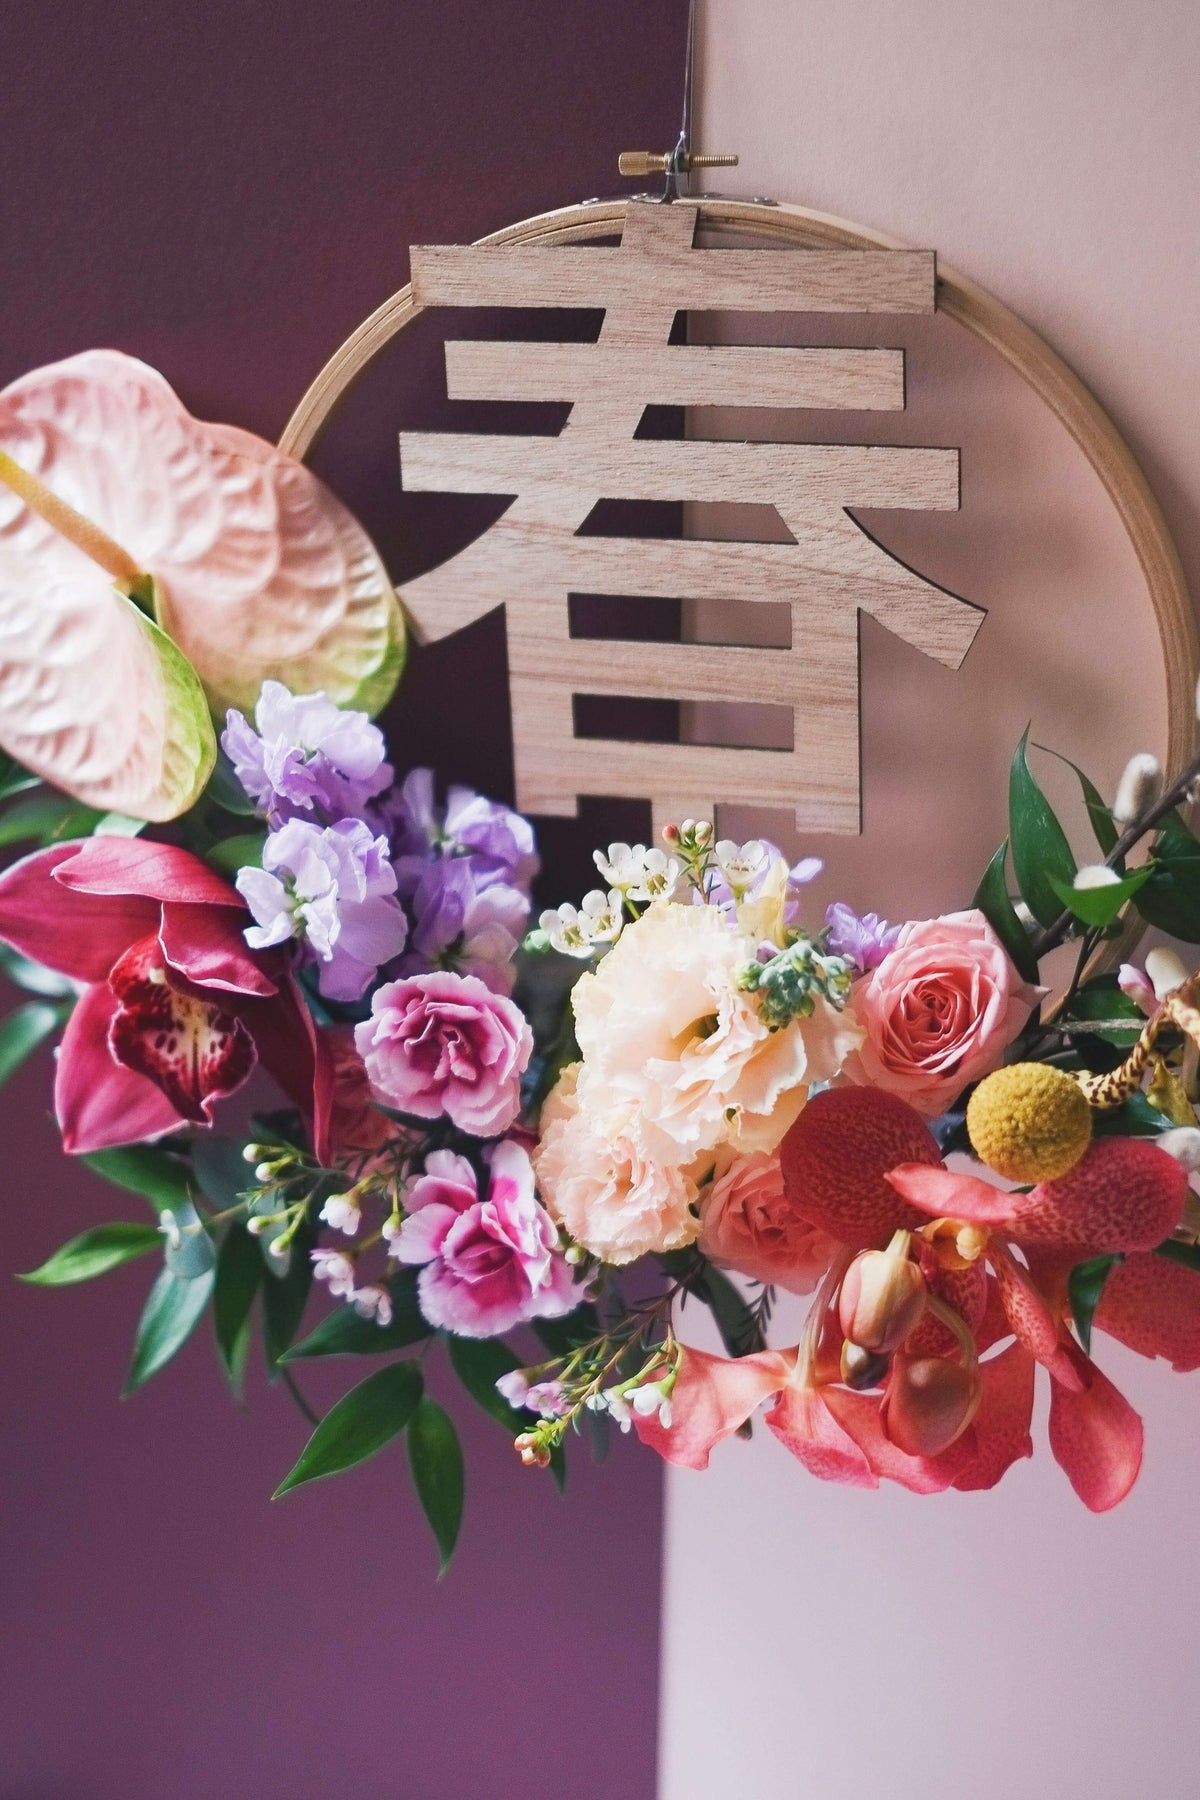 CNY 19 | 春到人间 🧧 Spring at your Door - hello flowers!